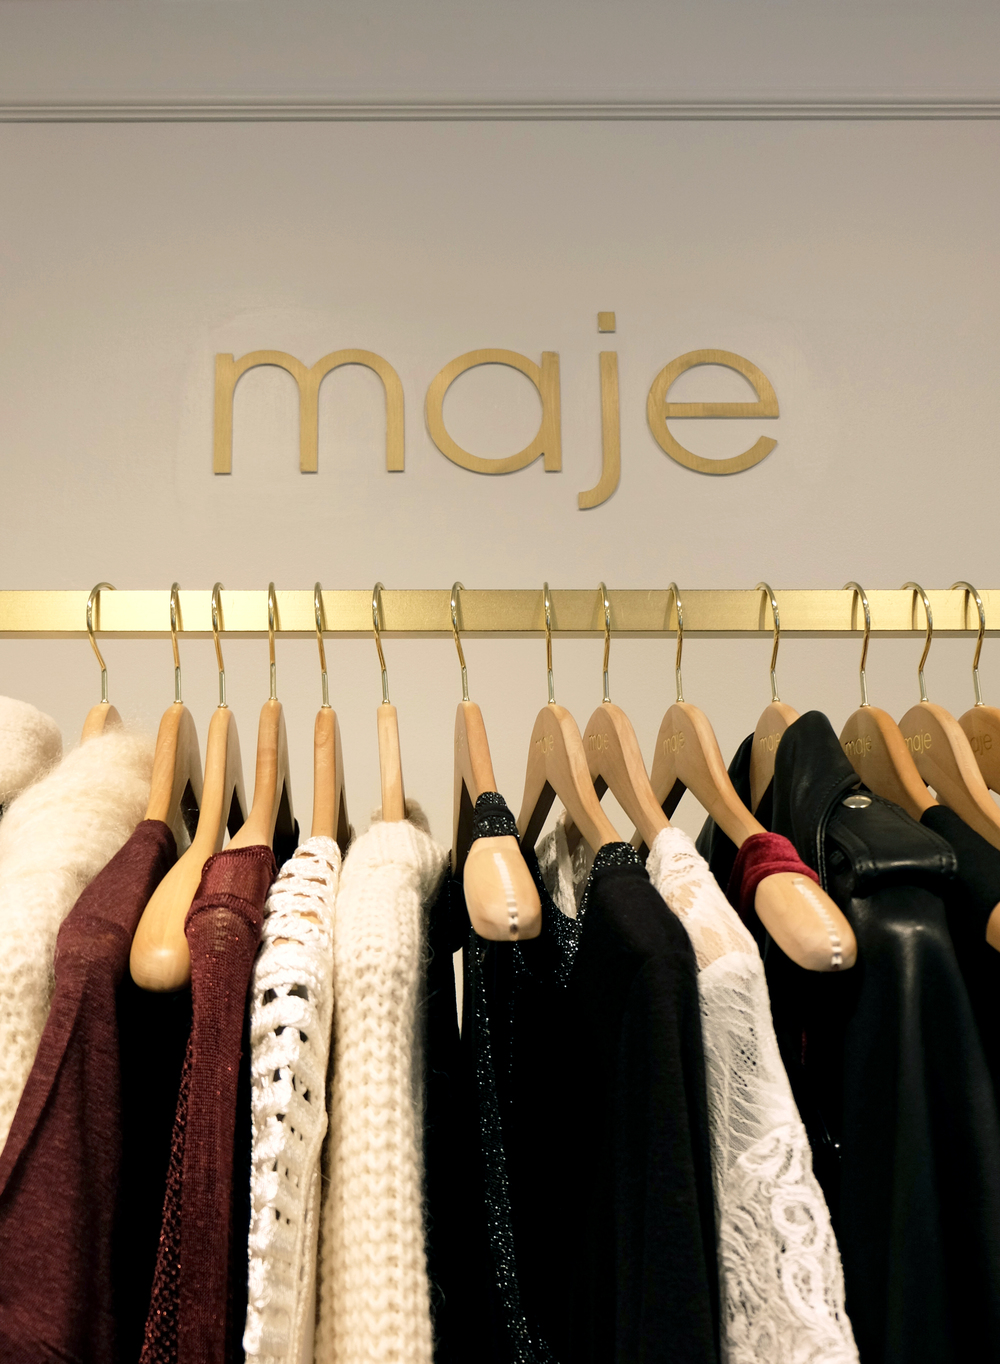 Maje / 10 Prince Street. New York, NY 10012 / 212-226-0426 Similar to Sandro, Maje also houses some great pieces overall (they are sister brands after all). The brand is a bit more glamorous than Sandro but there definitely are some impressive finds.